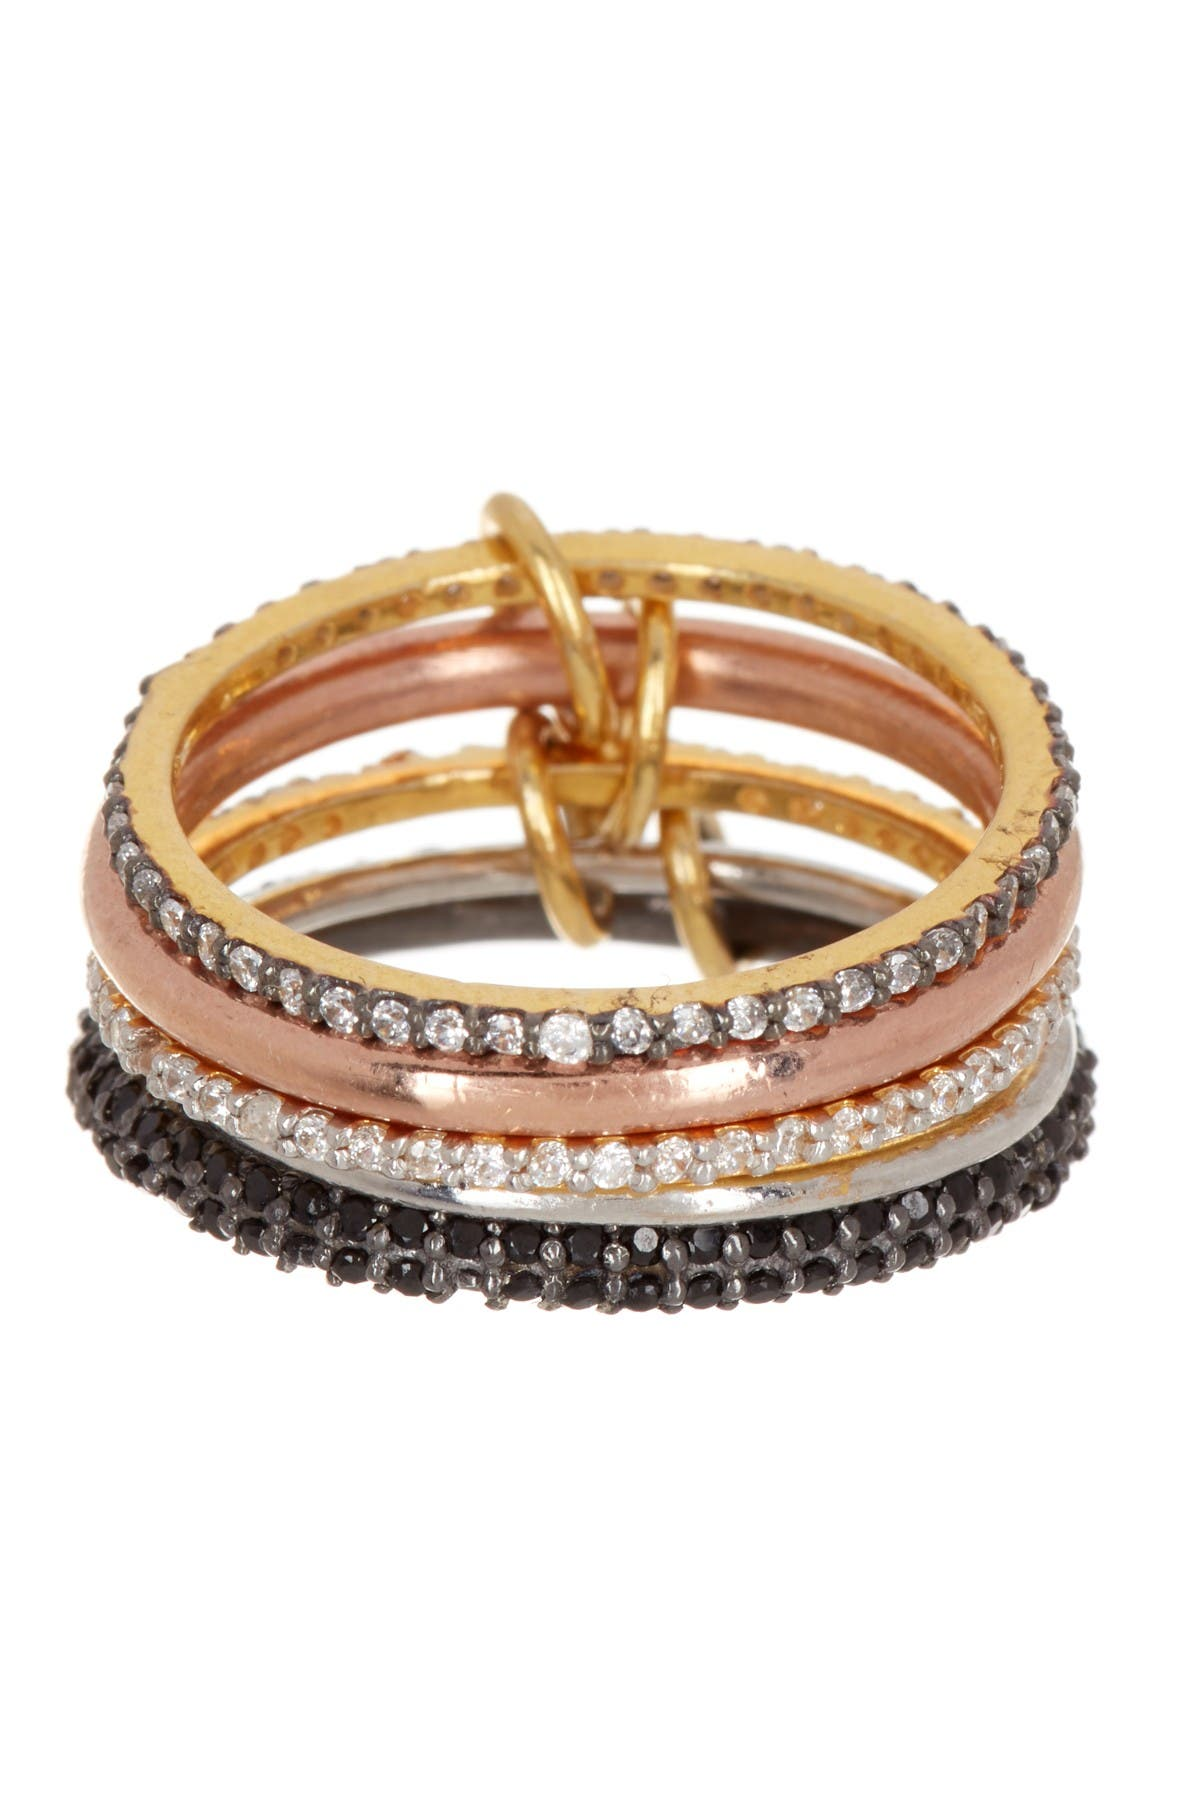 Image of Forever Creations USA Inc. Tri-Tone Black Spinel & Simulated Diamond Stackable Ring